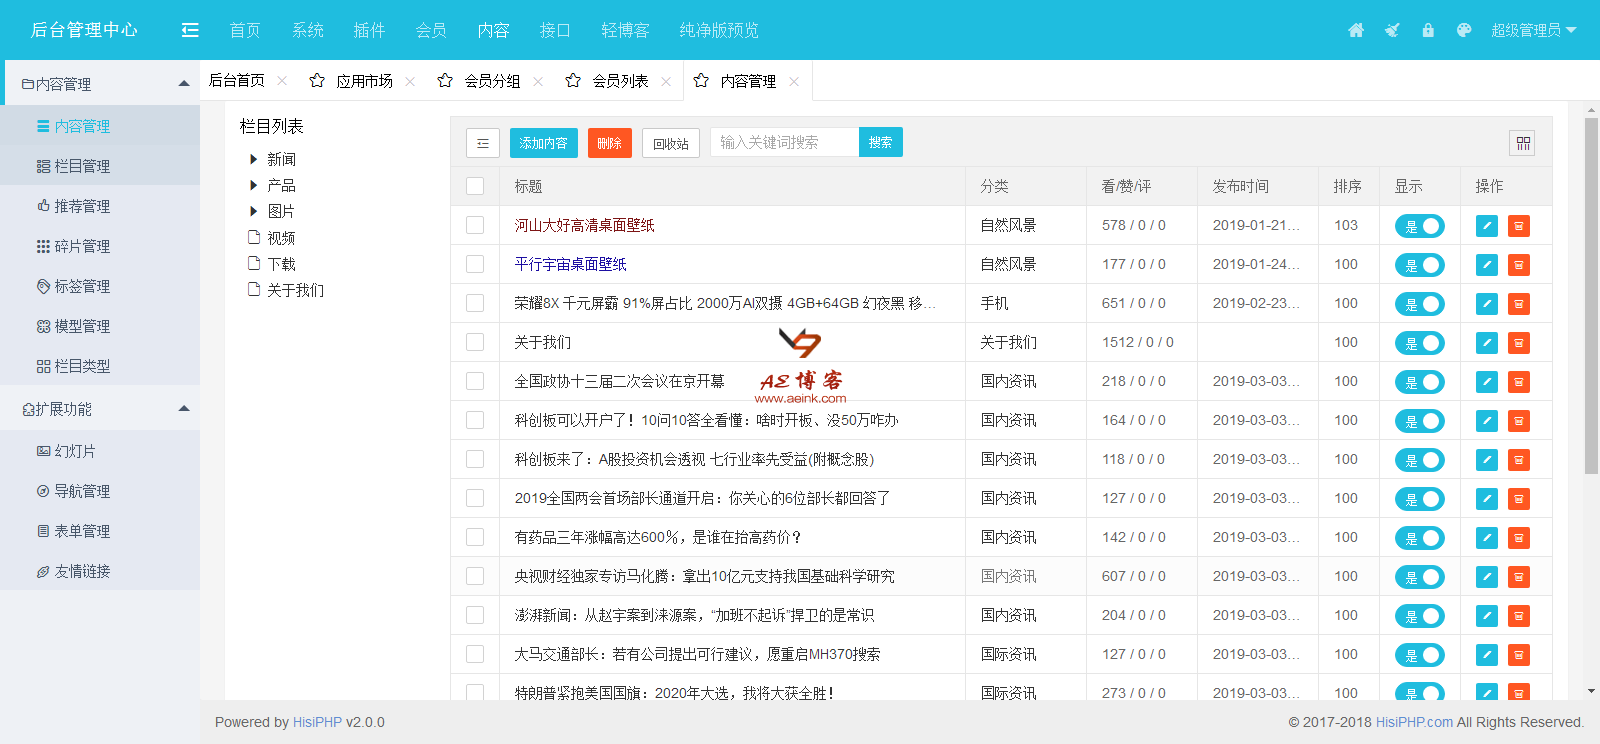 管理控制台 - Powered by HisiPHP2.png